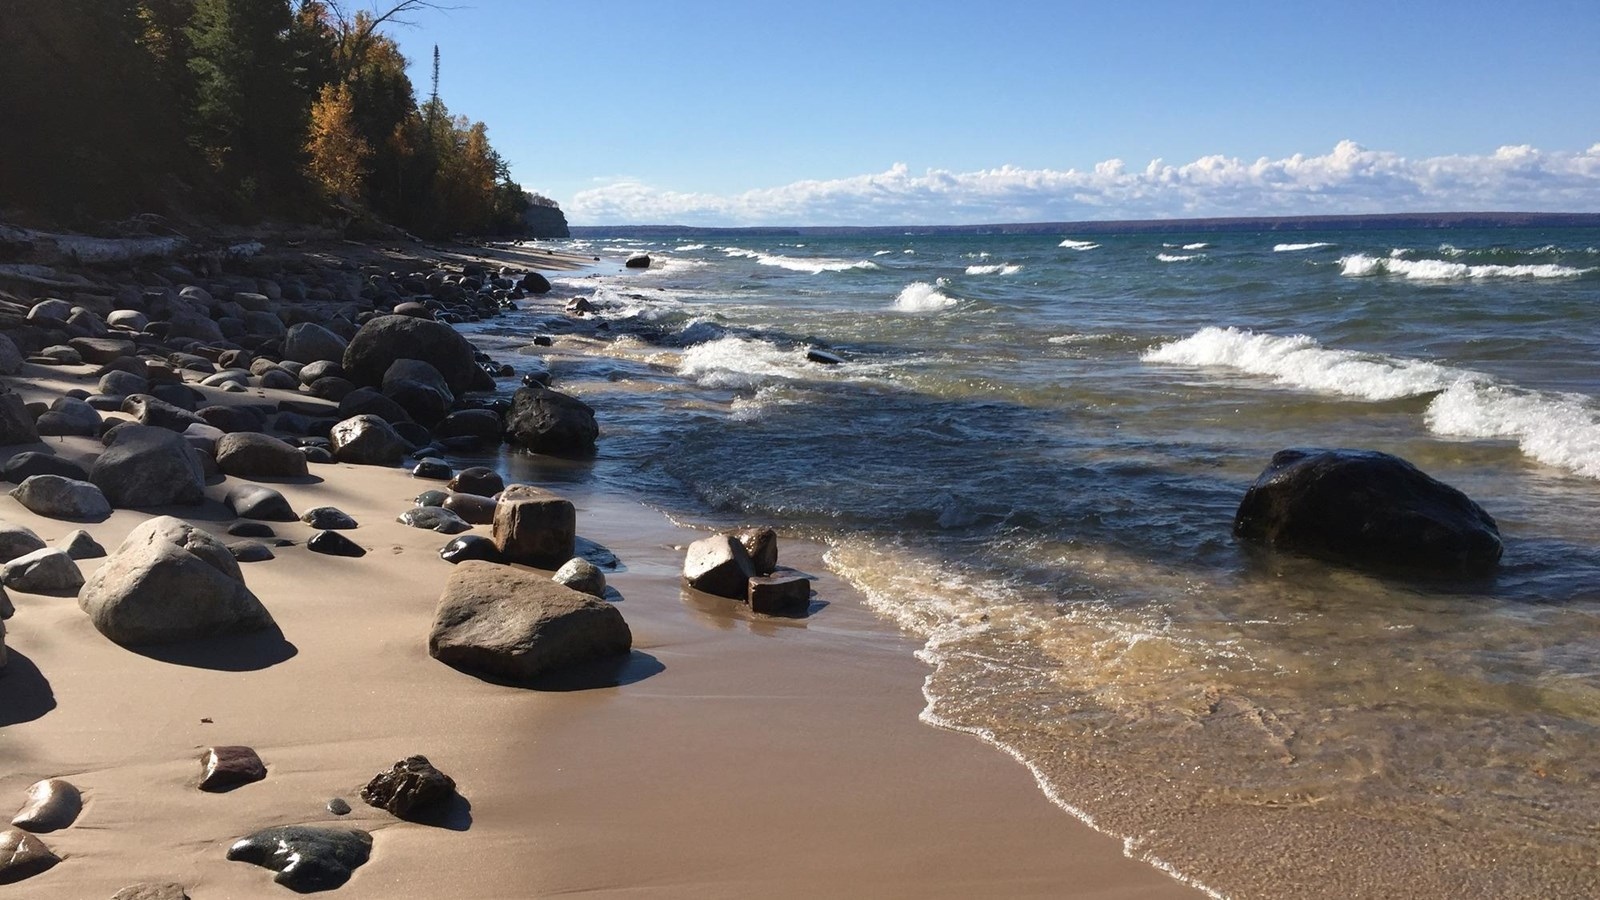 small and medium sized boulders and rocks on the beach and in the water.